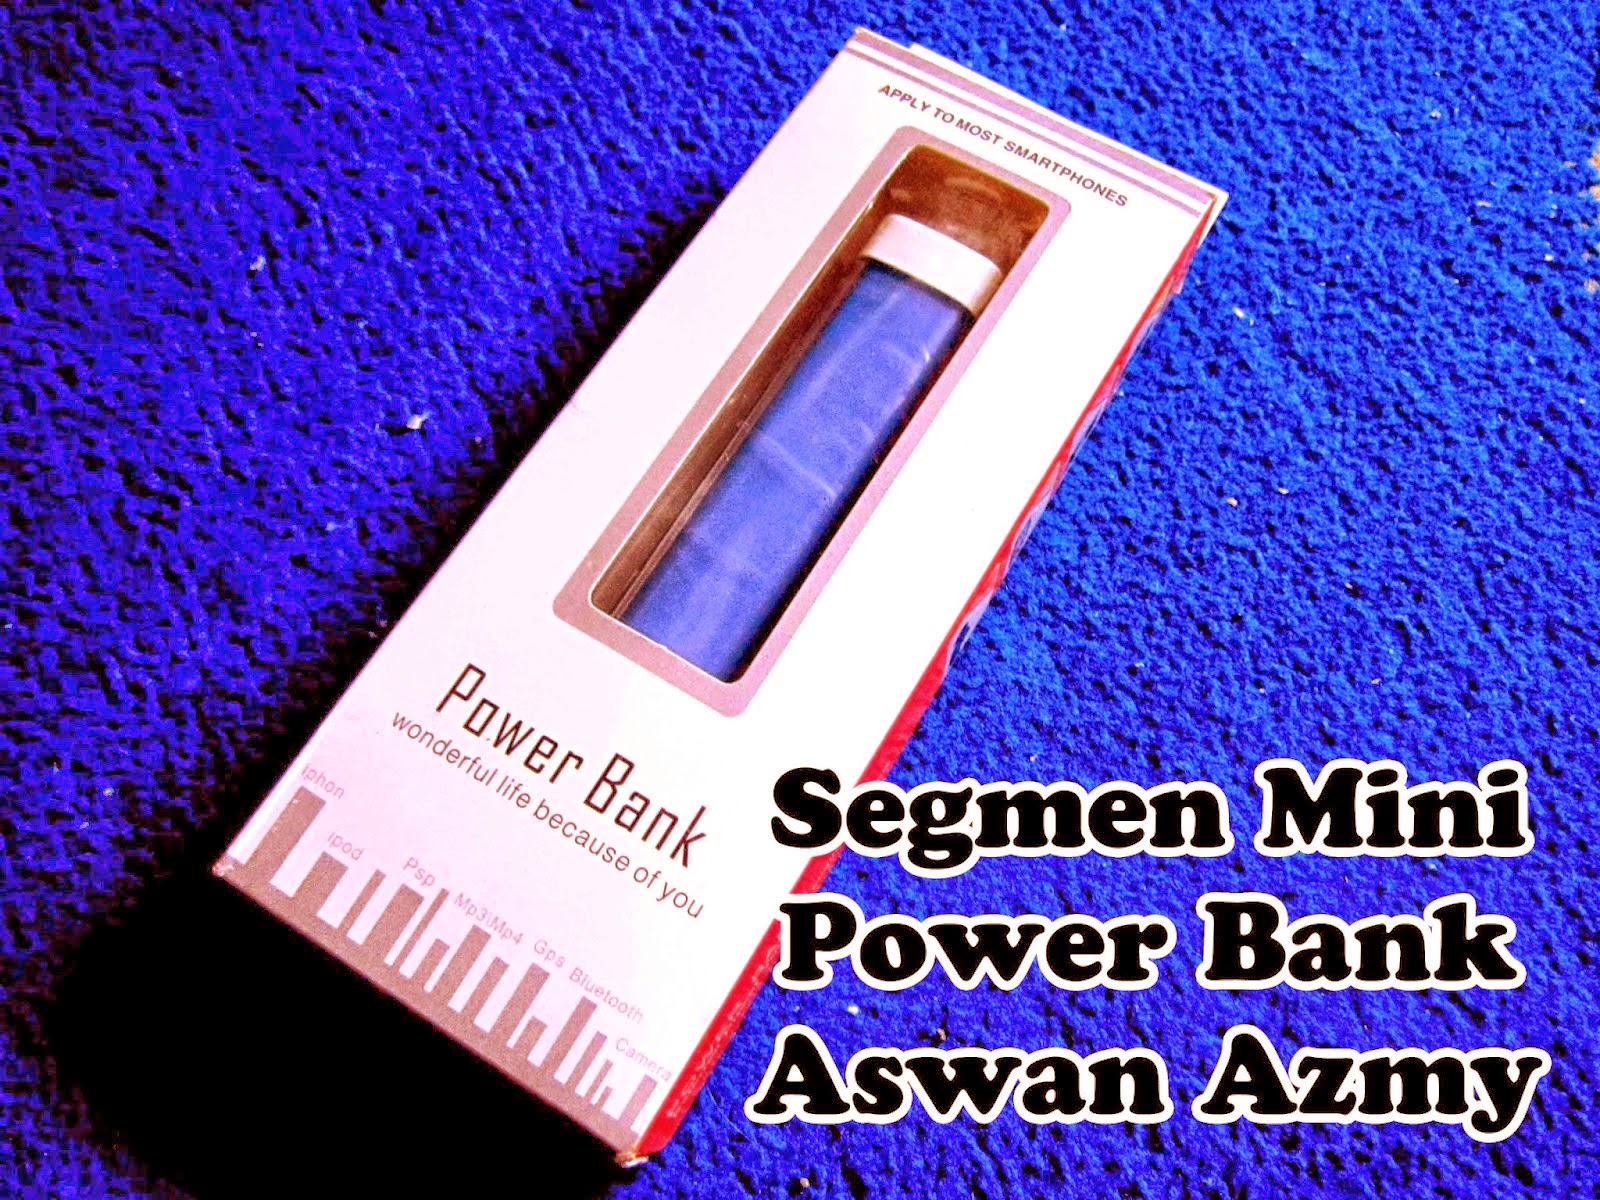 Segmen Mini Power Bank Aswan Azmy, Power Bank, Aswan Azmy, Segmen Mini, Segmen, http://www.blogieta.com/2014/04/segmen-mini-power-bank-aswan-azmy.html